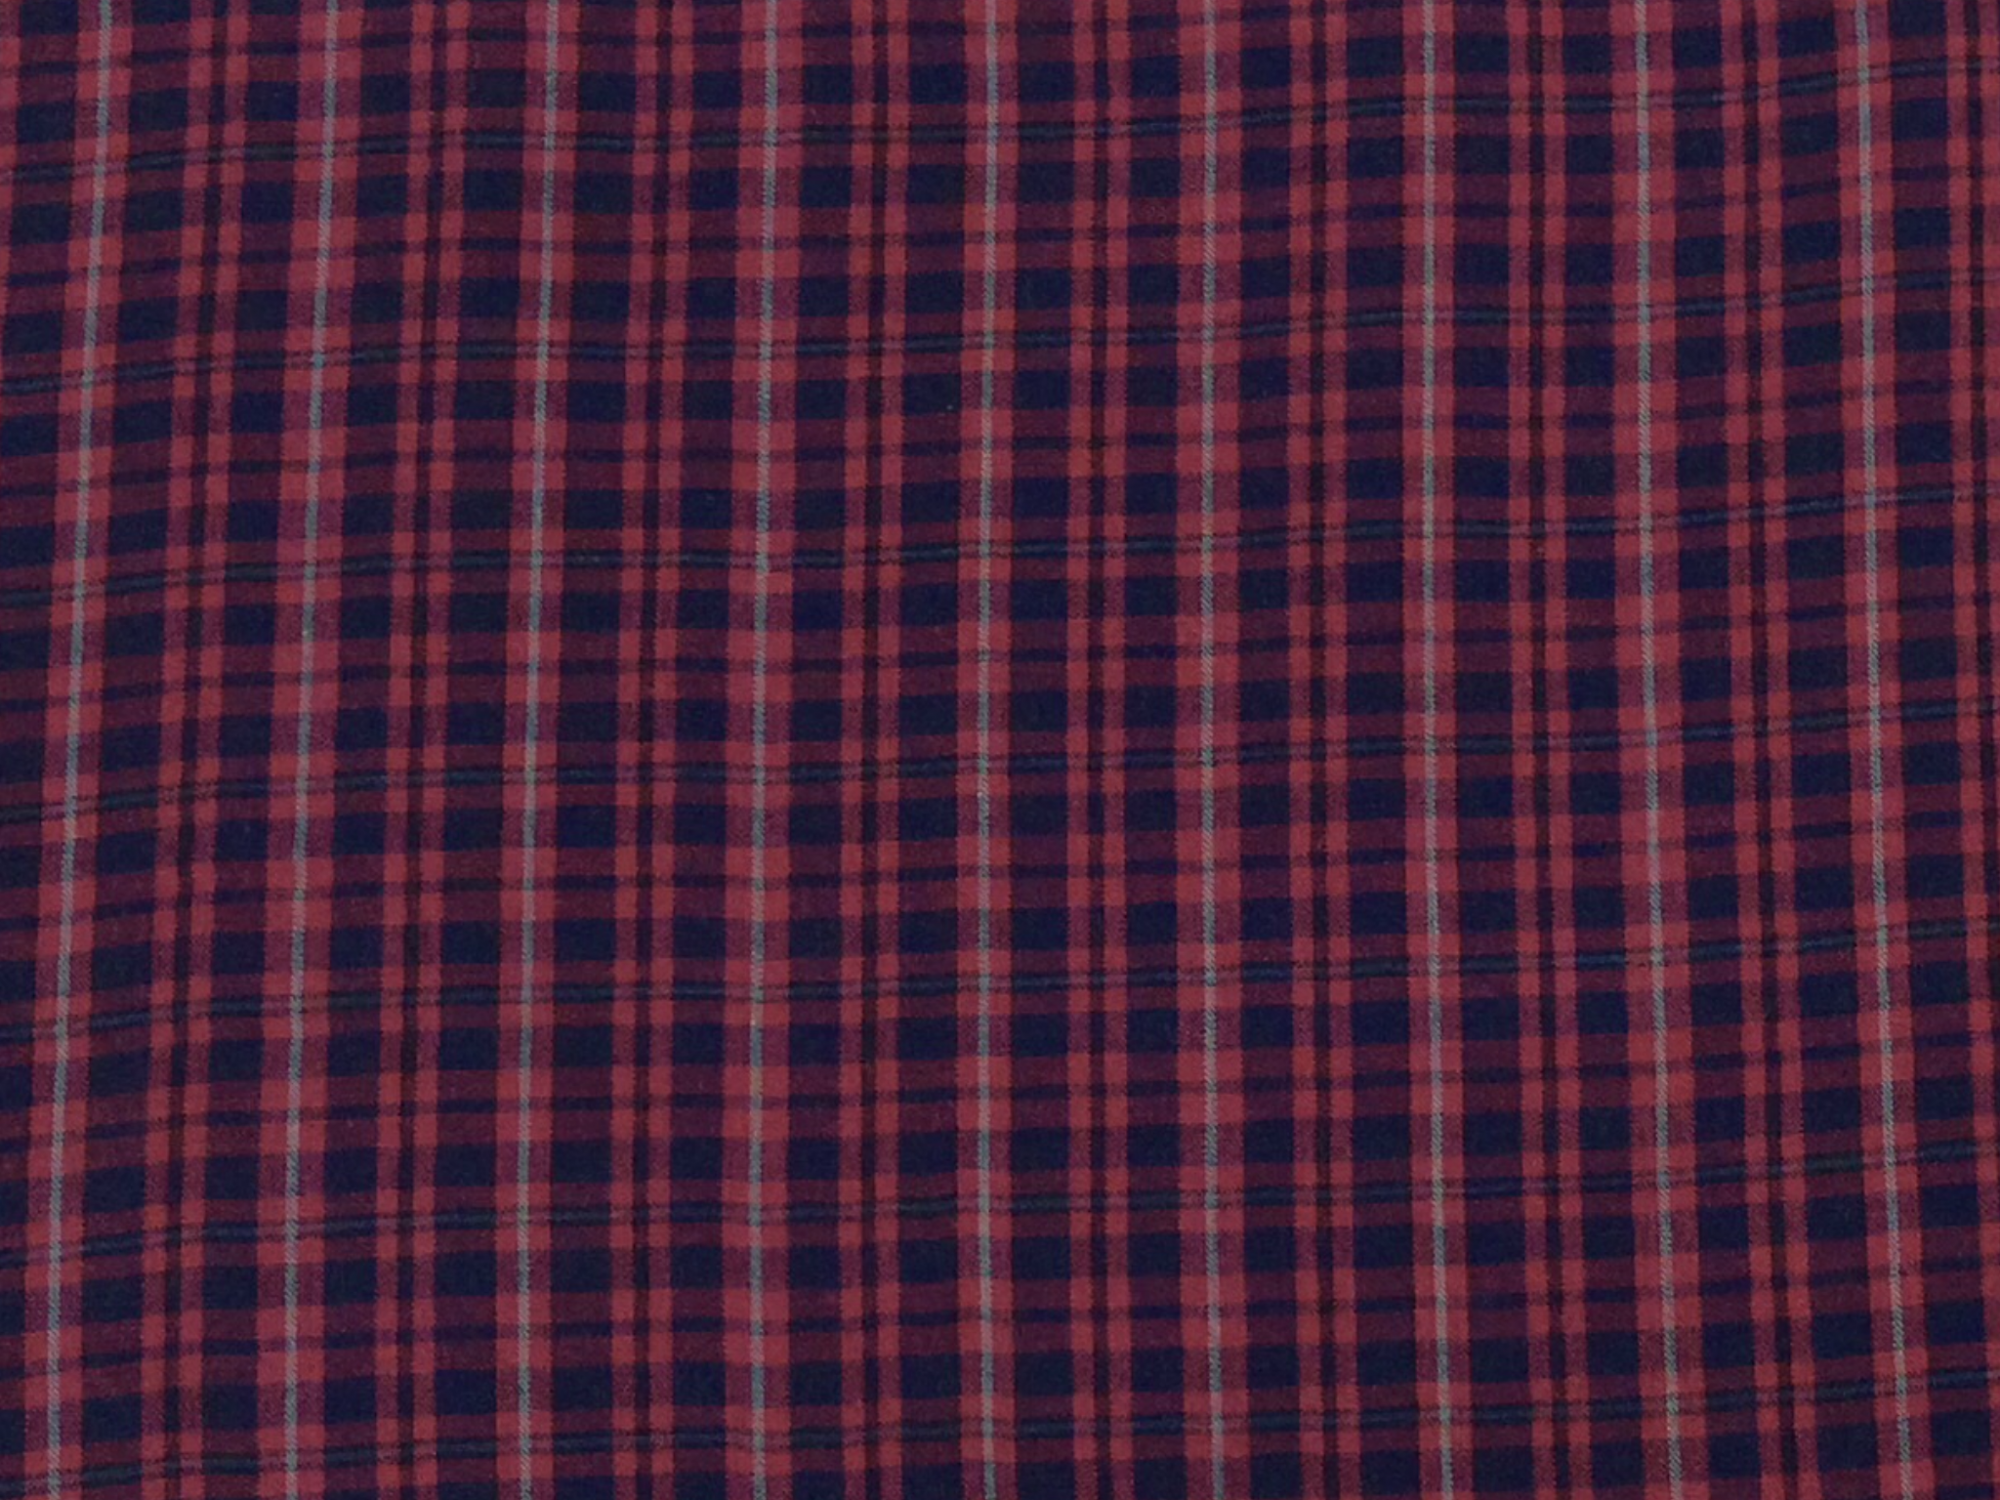 Tartan Plaid ONeill Clan Apparel Fabric Yarn Dyed Fabric FTP30